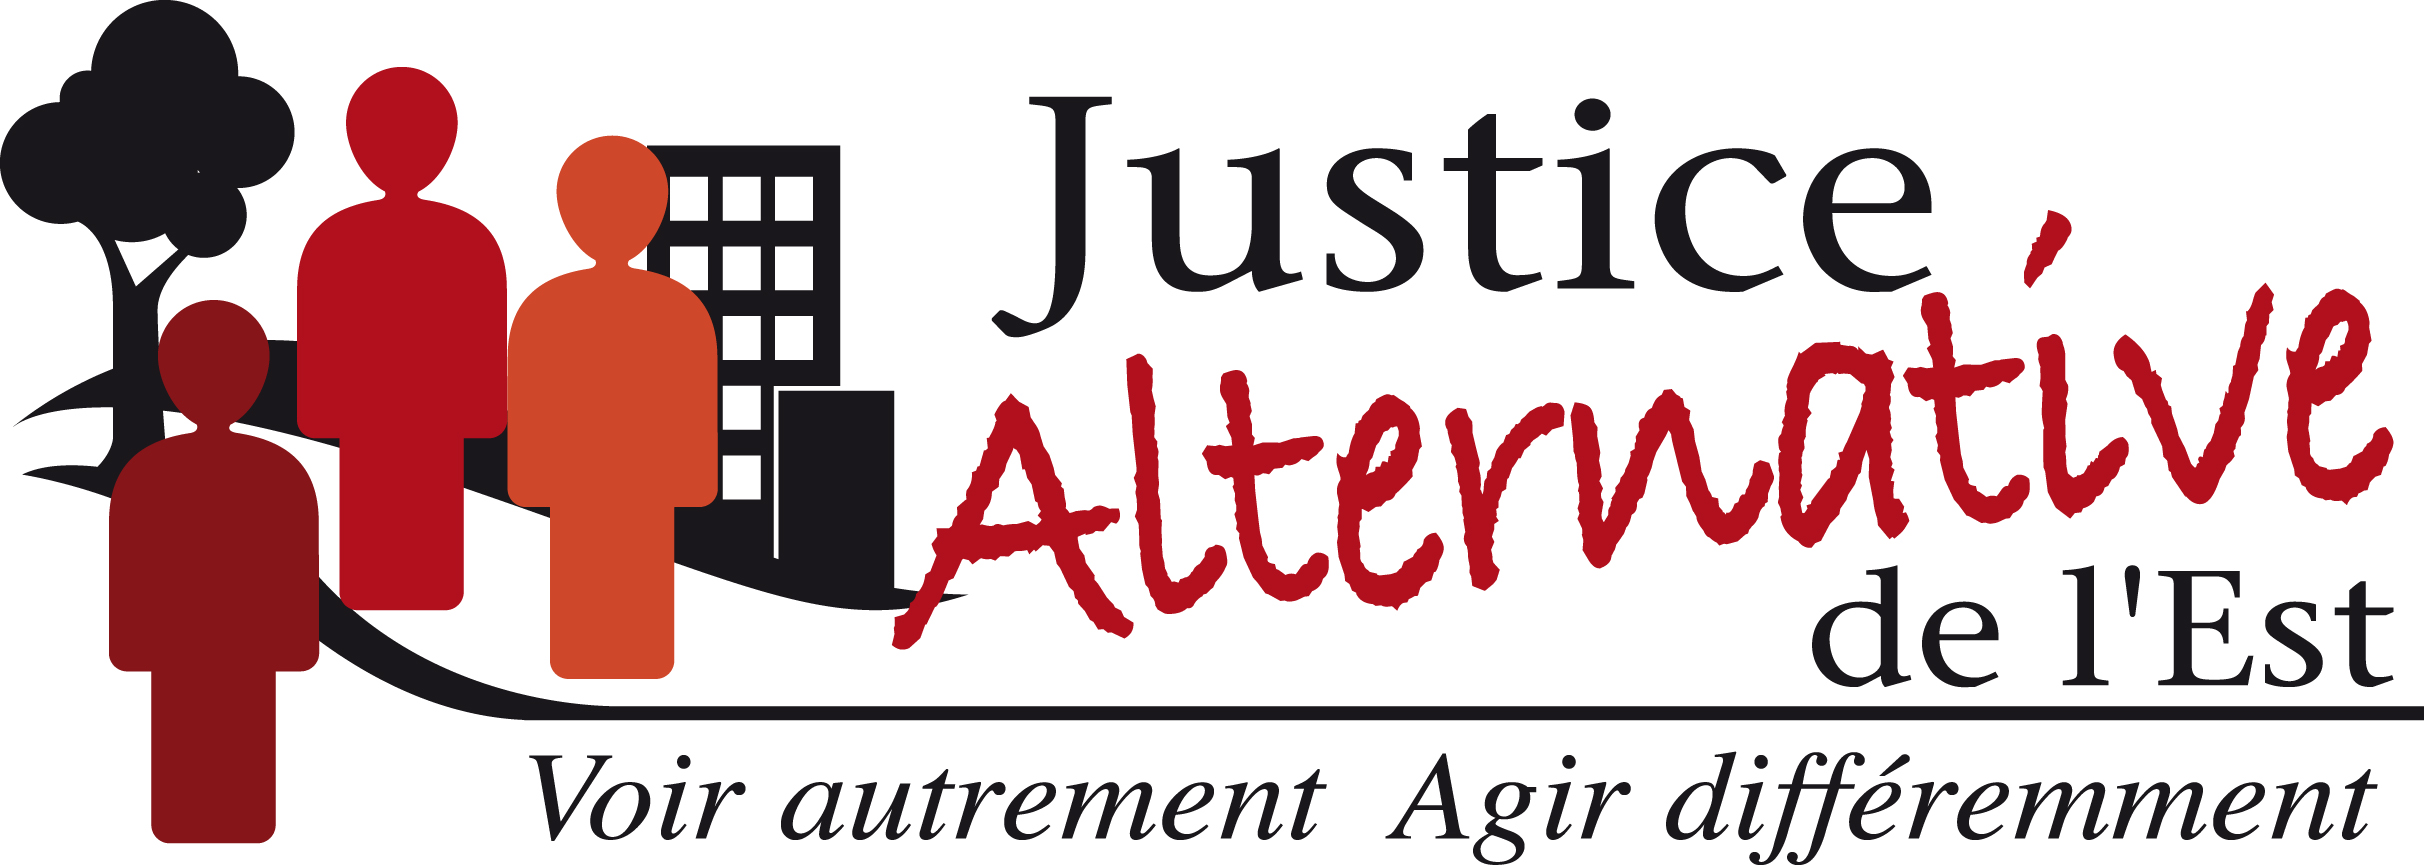 JUSTICE ALTERNATIVE DE L'EST